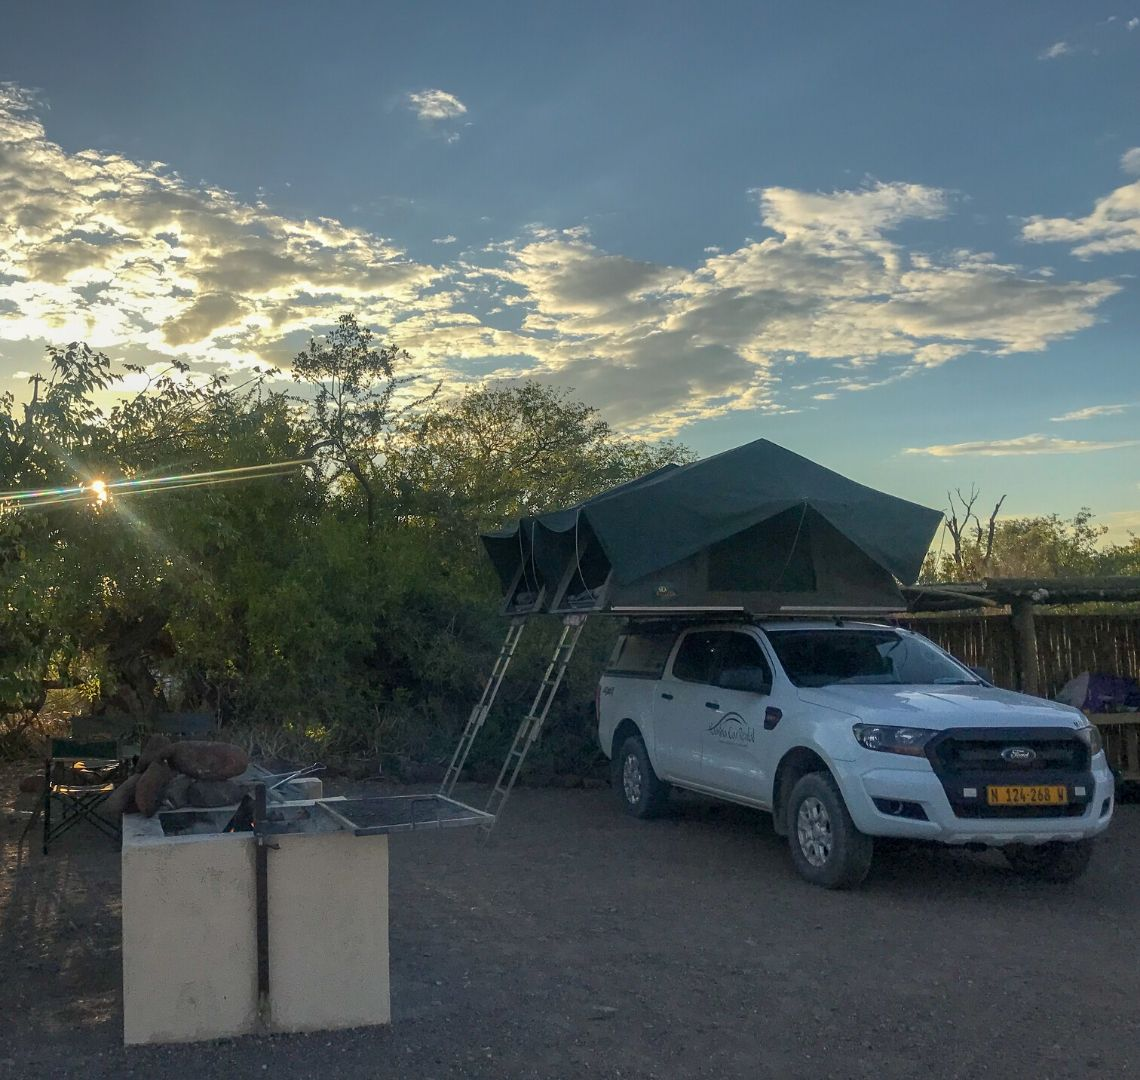 2 Week Namibia Itinerary - our campsite in Palmwag, there is the BBQ area in the left foreground. Behind it we had set up our tables. In the middle and to the right is the car with the tents already set up. Behind the car is a small wooden shelter where the sink and power points were.